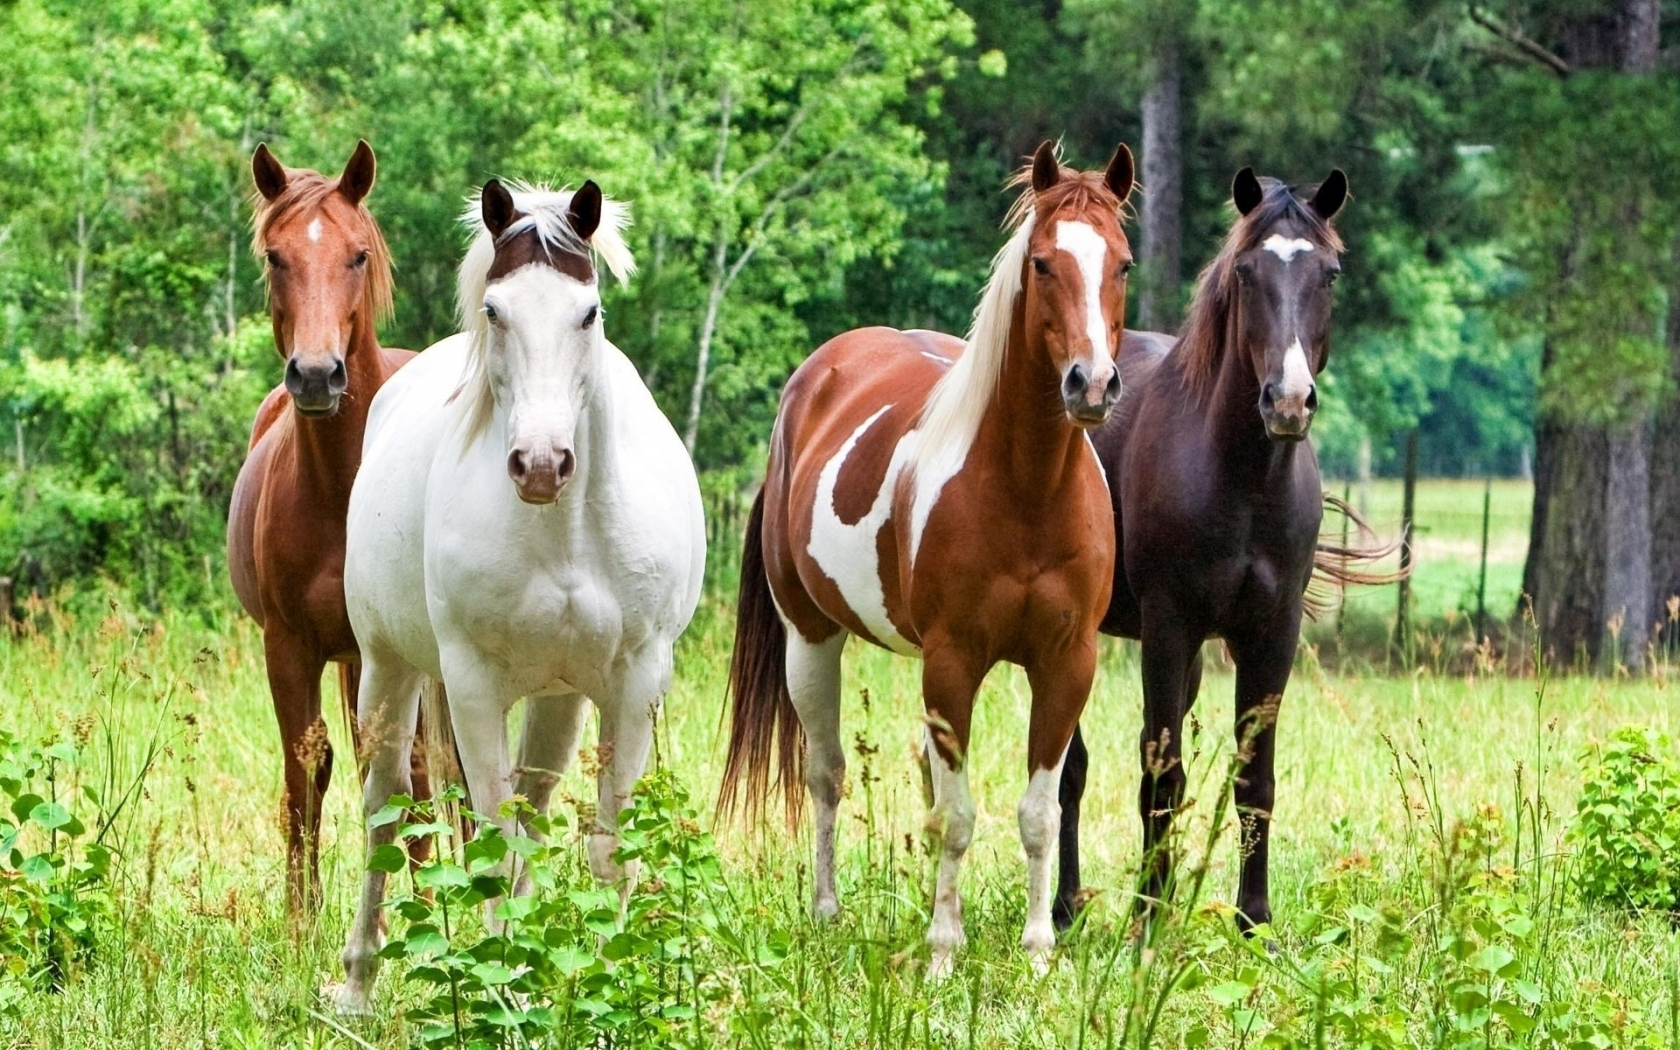 Horses for 1680 x 1050 widescreen resolution